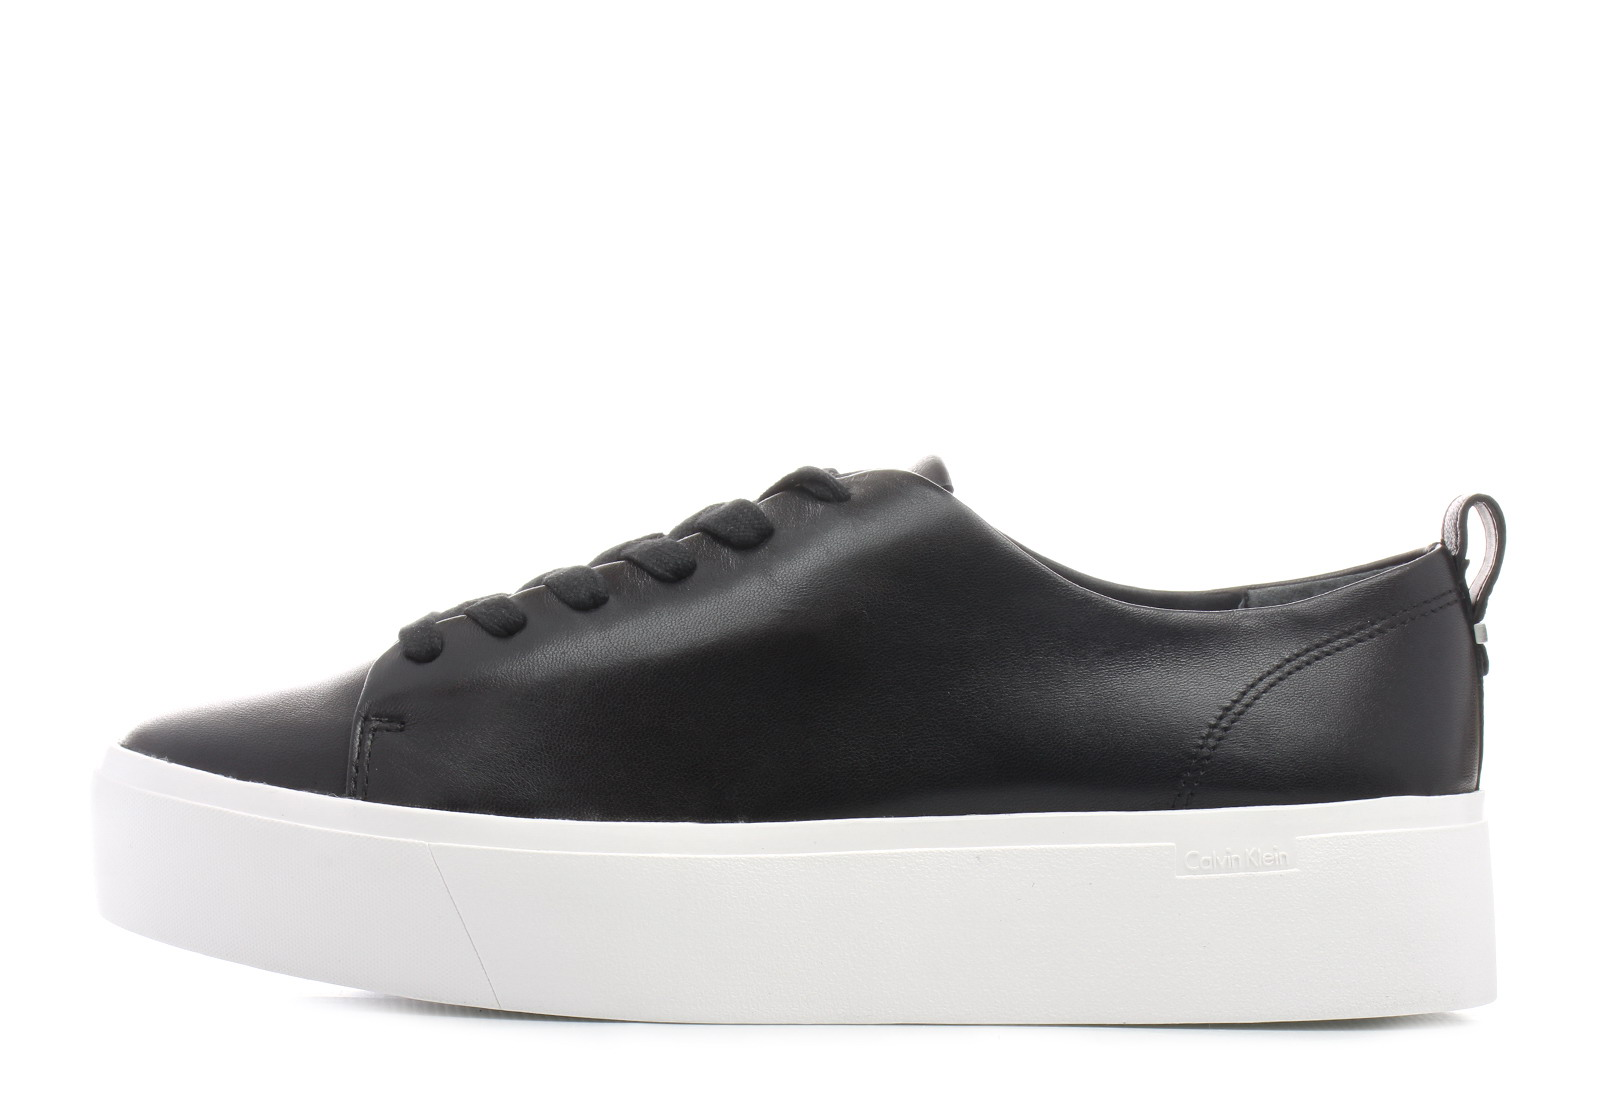 78843796a266 Calvin Klein Black Label Cipő - Janet - E6539-BLK - Office Shoes ...